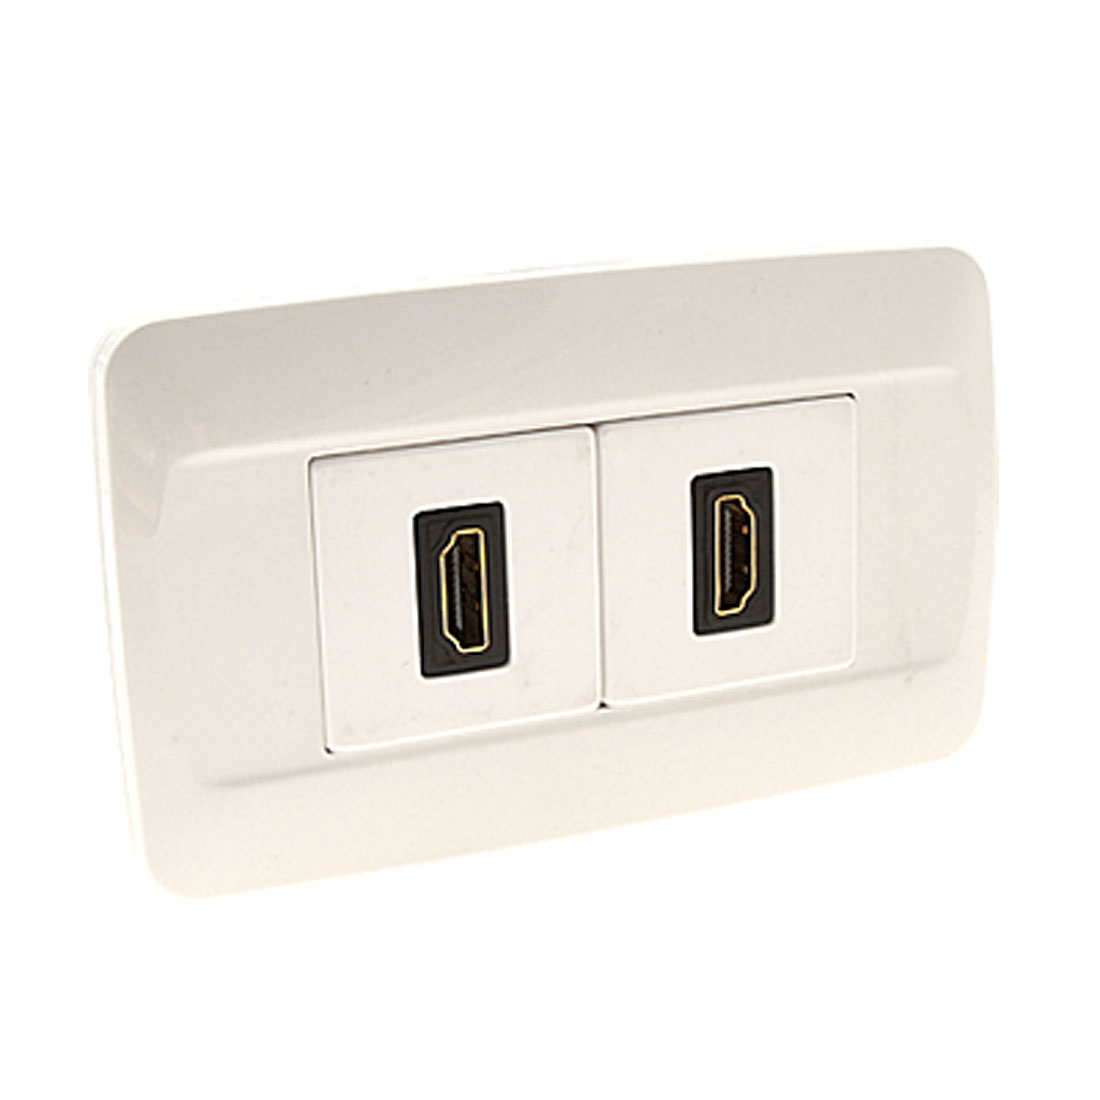 2-Gang Dual HDMI Female Jack Outlet Socket Wall Plate Panel